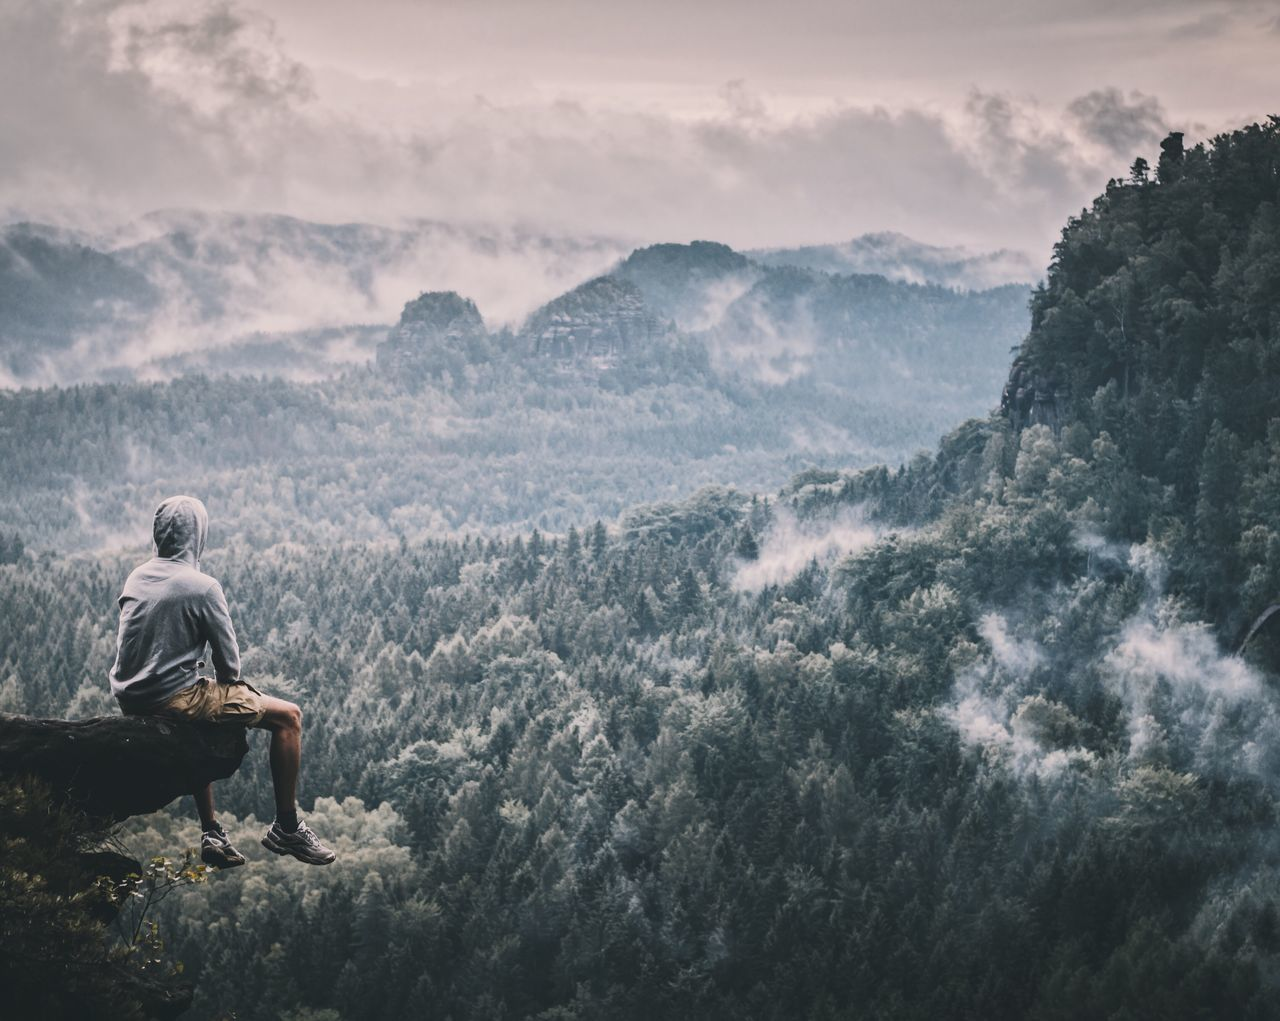 Sitting Mountain Real People Nature One Person Beauty In Nature Full Length Scenics Outdoors Day Sky Men Leisure Activity Lifestyles One Man Only People